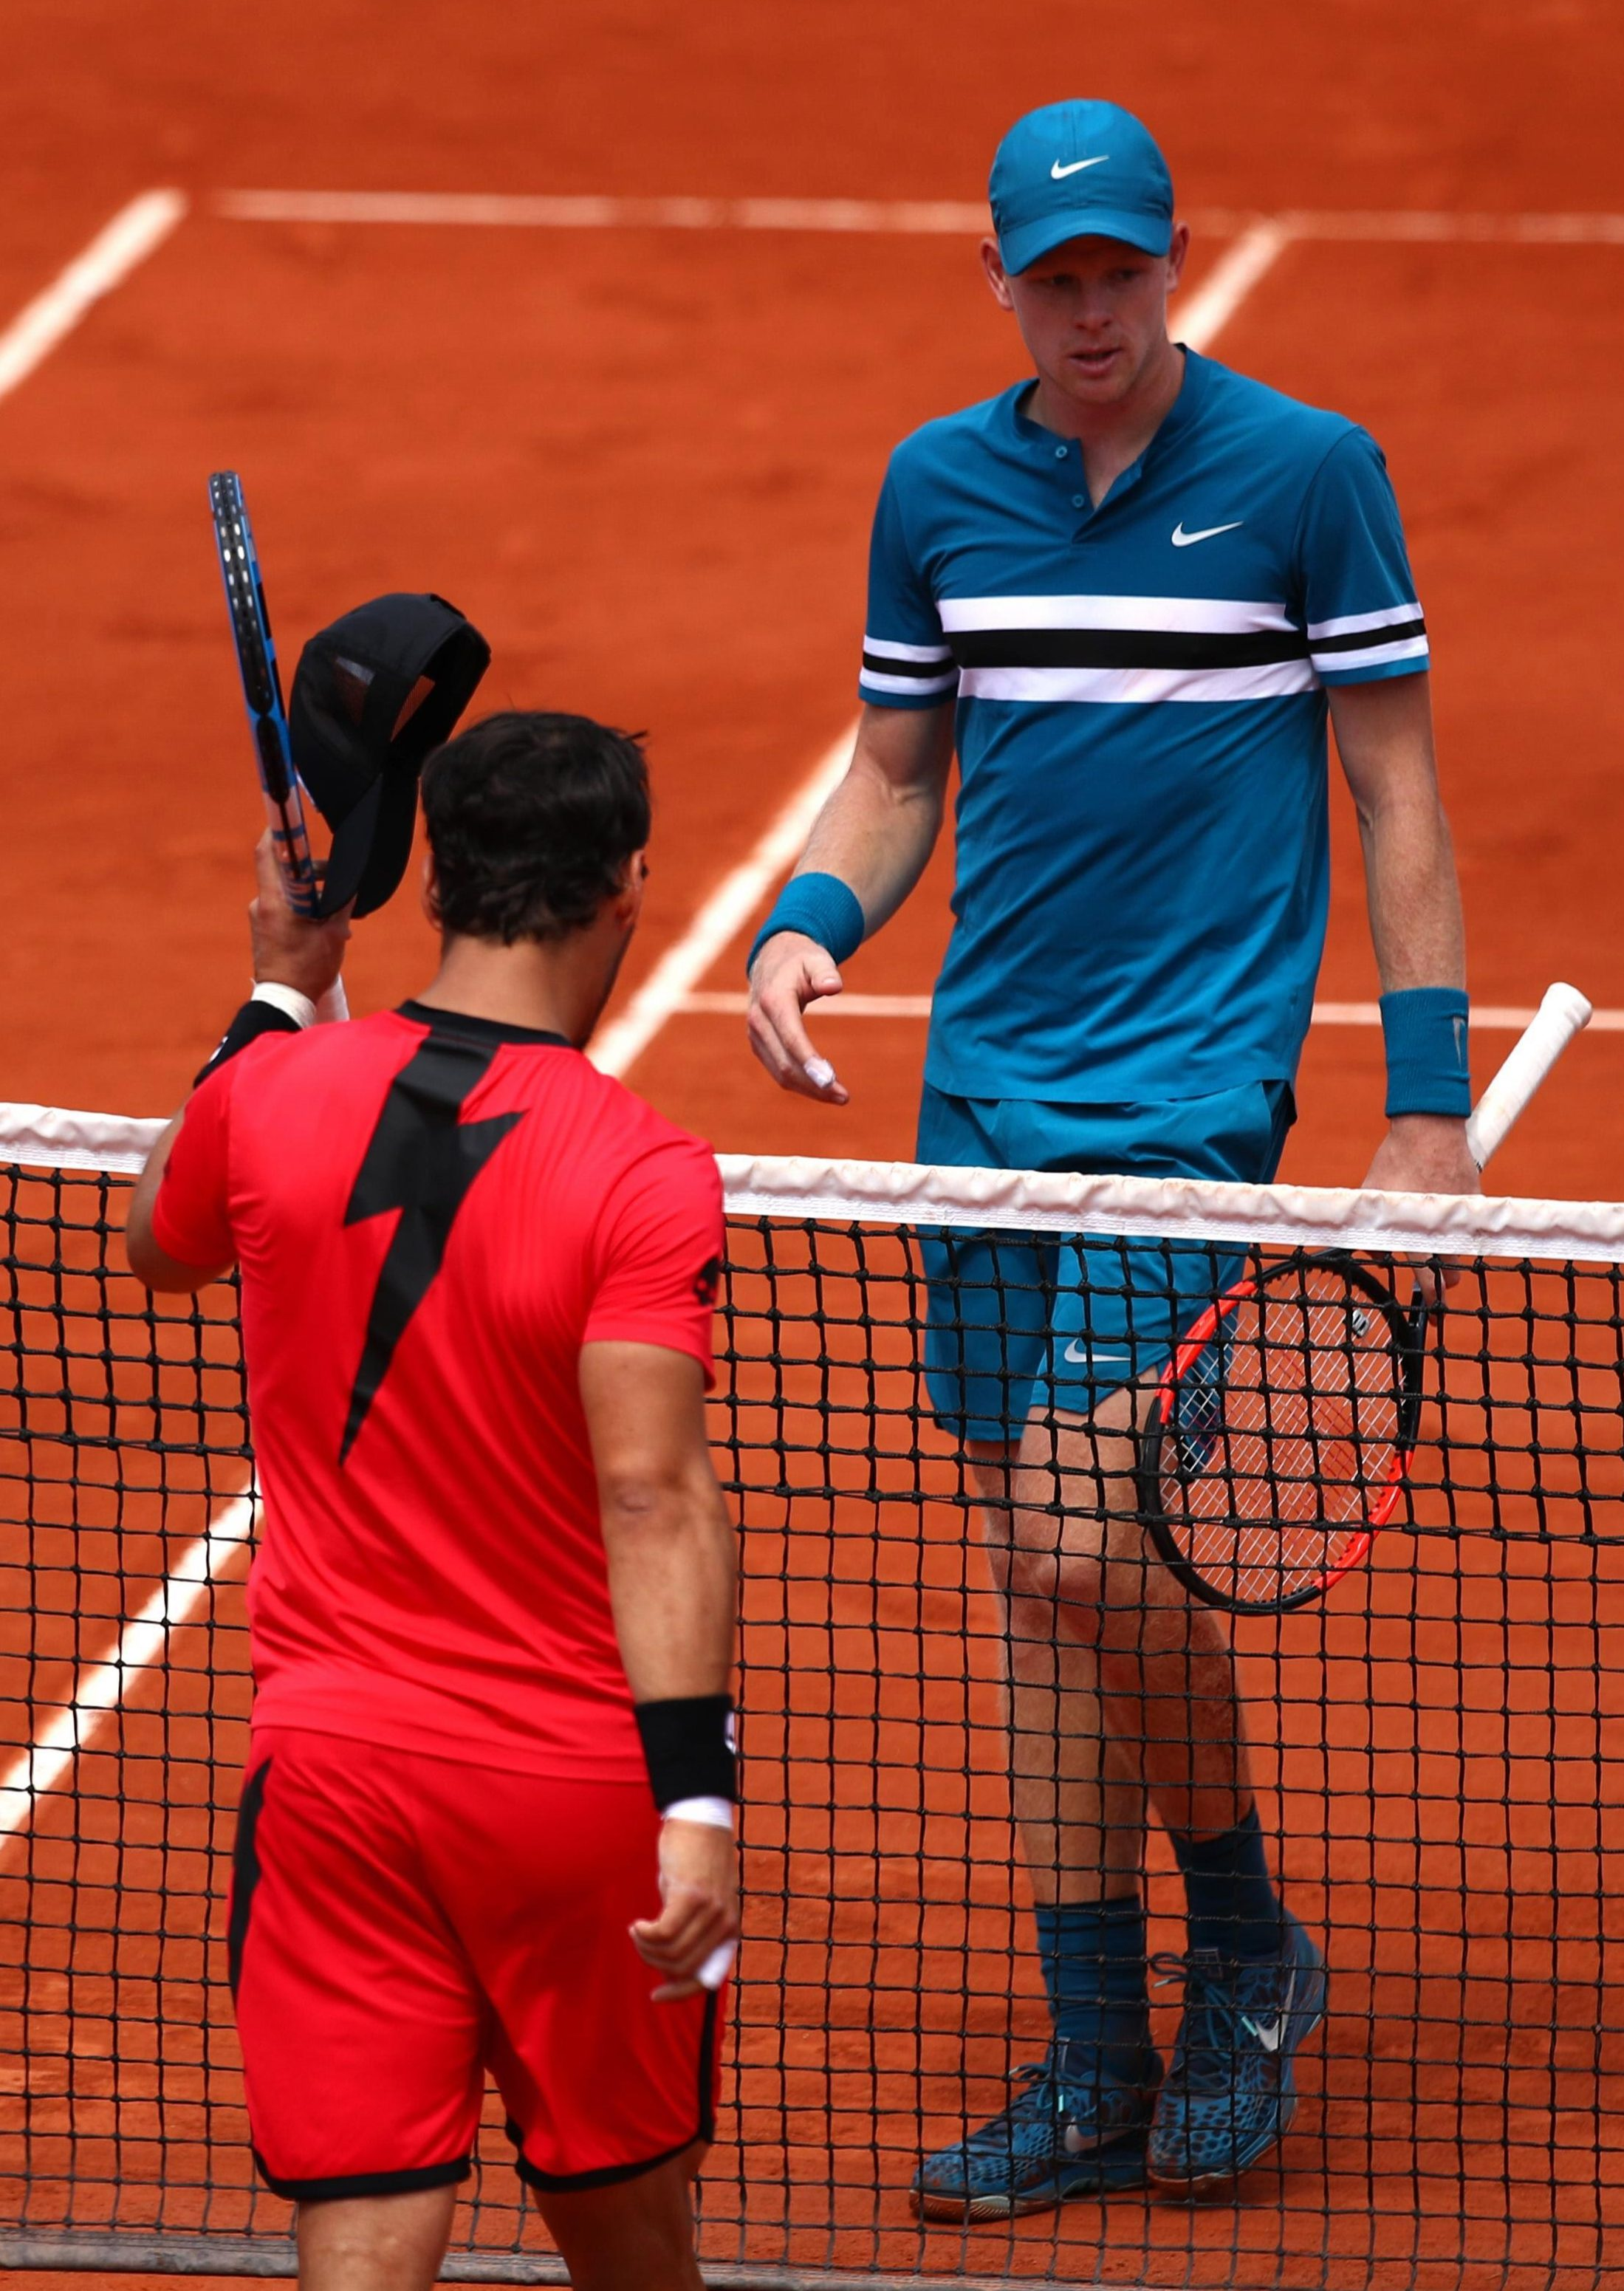 British number one Kyle Edmund lost in the French Open third round against Fabio Fognini